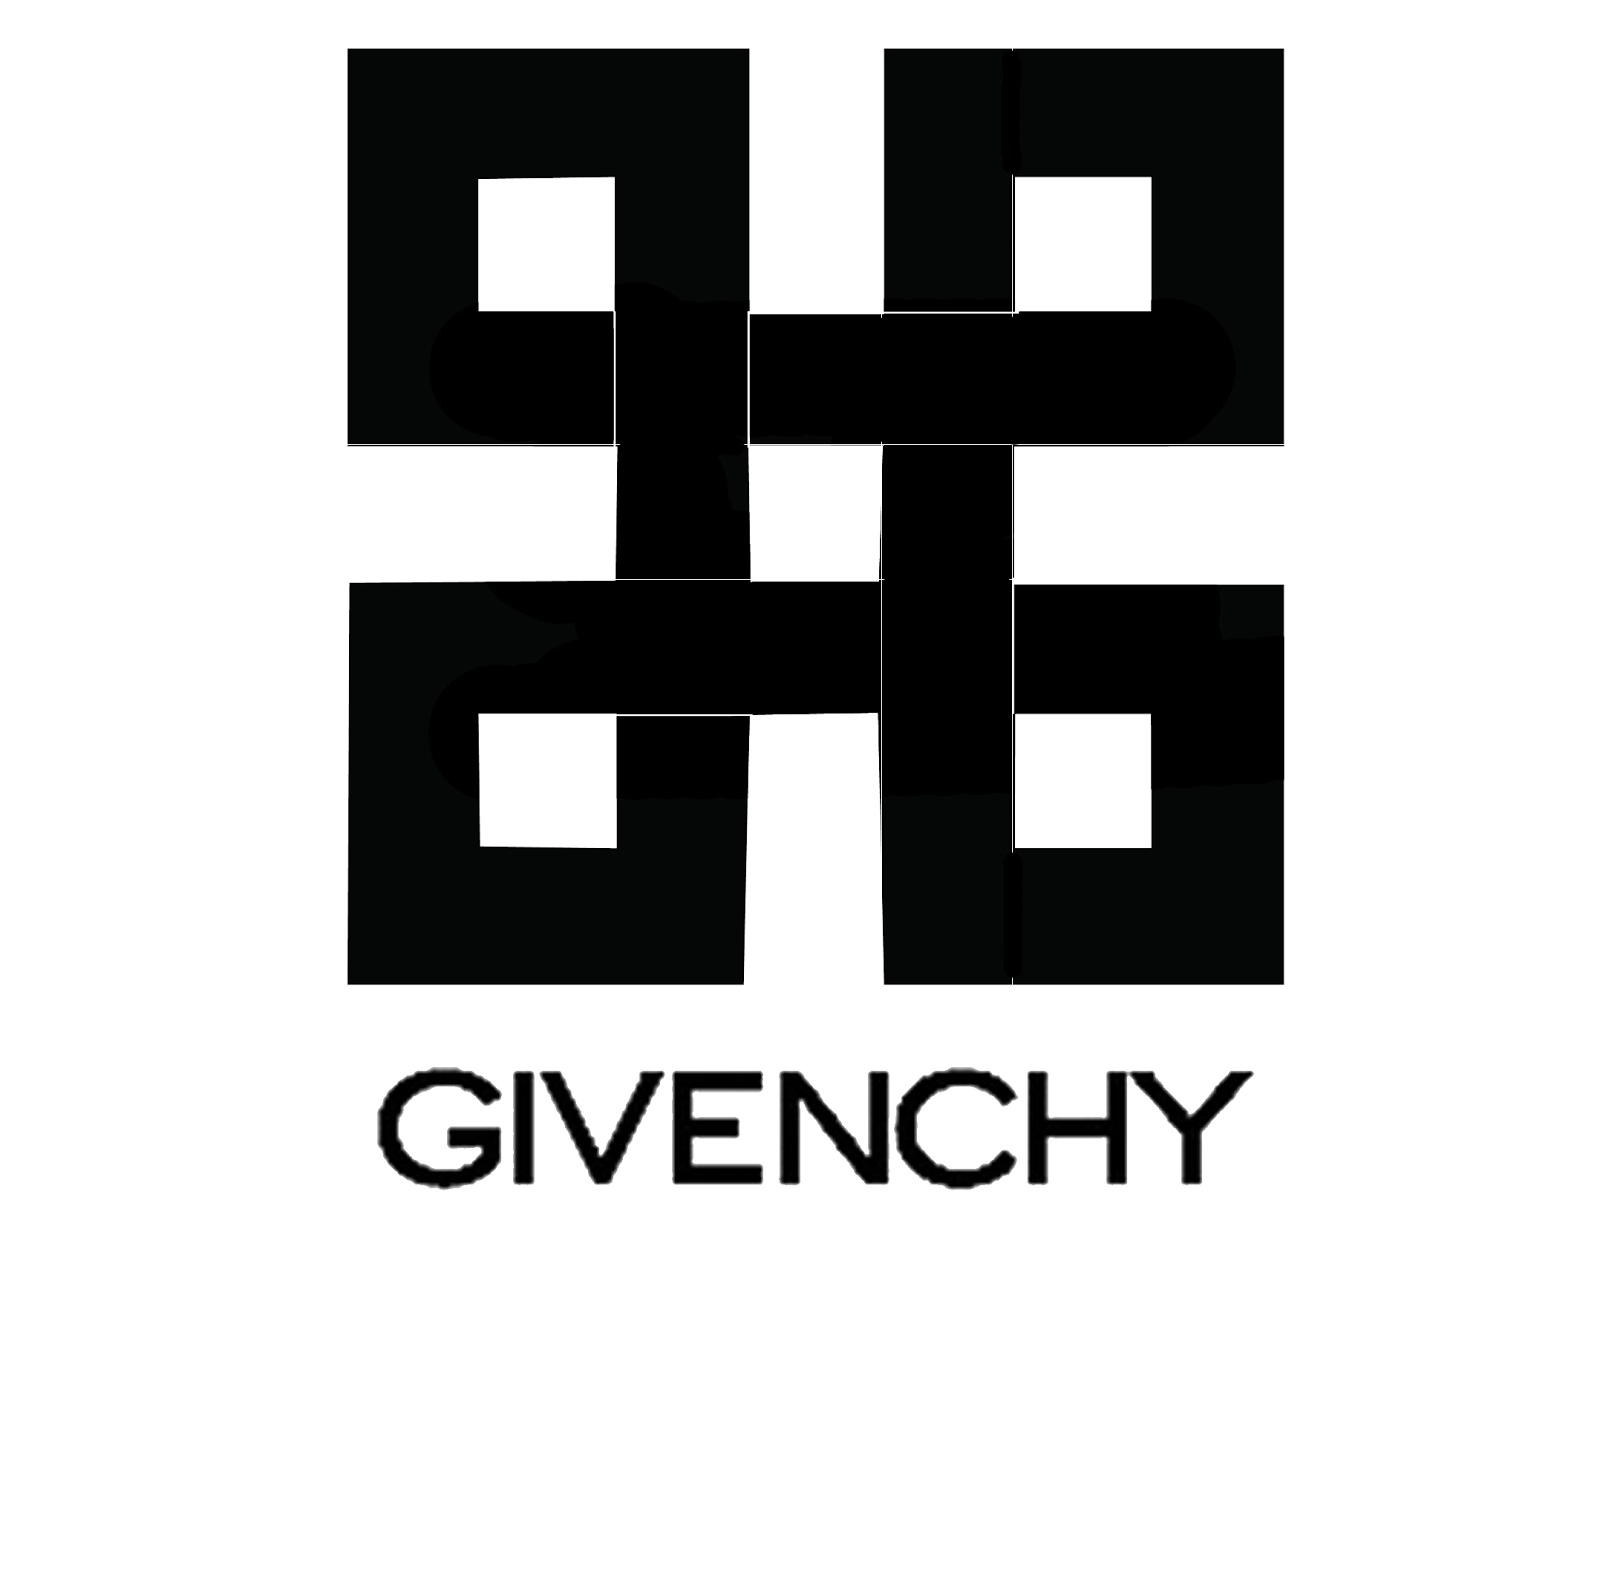 How To Build Kitchen Cabinets Video Givenchy Image To U